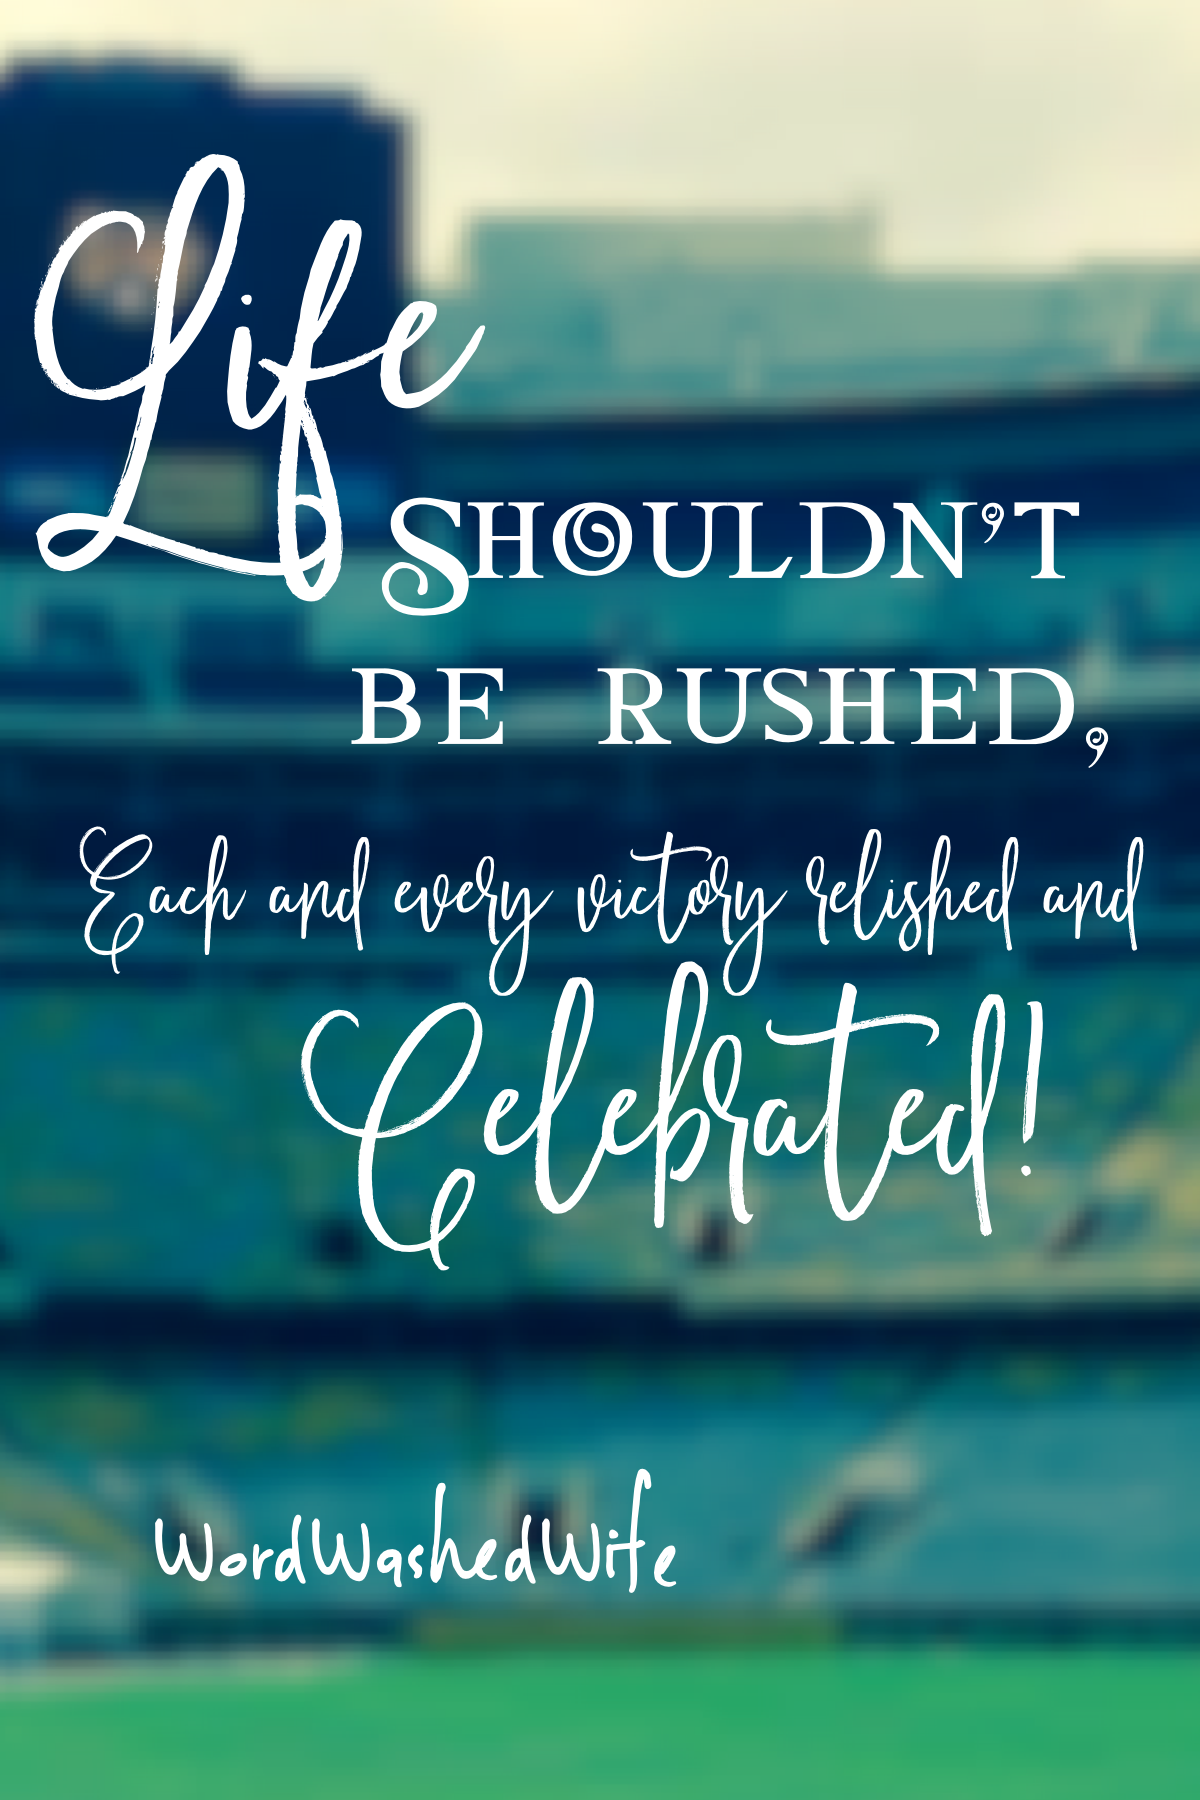 Life must be Celebrated!